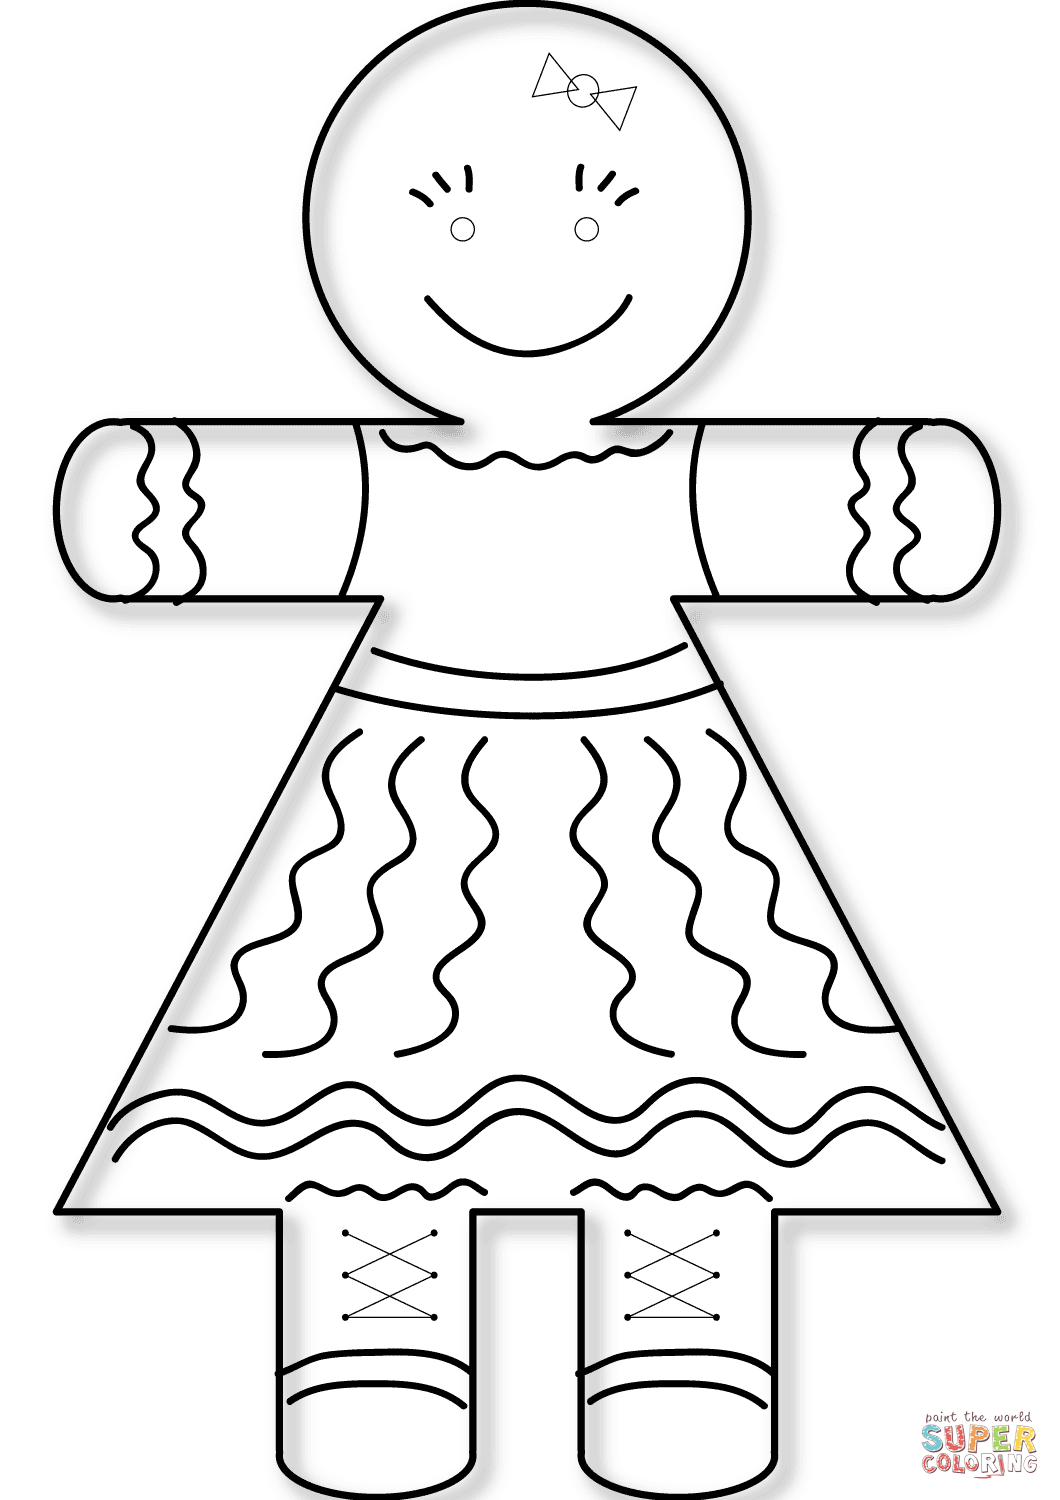 Printable Girl Astronaut Cut Out